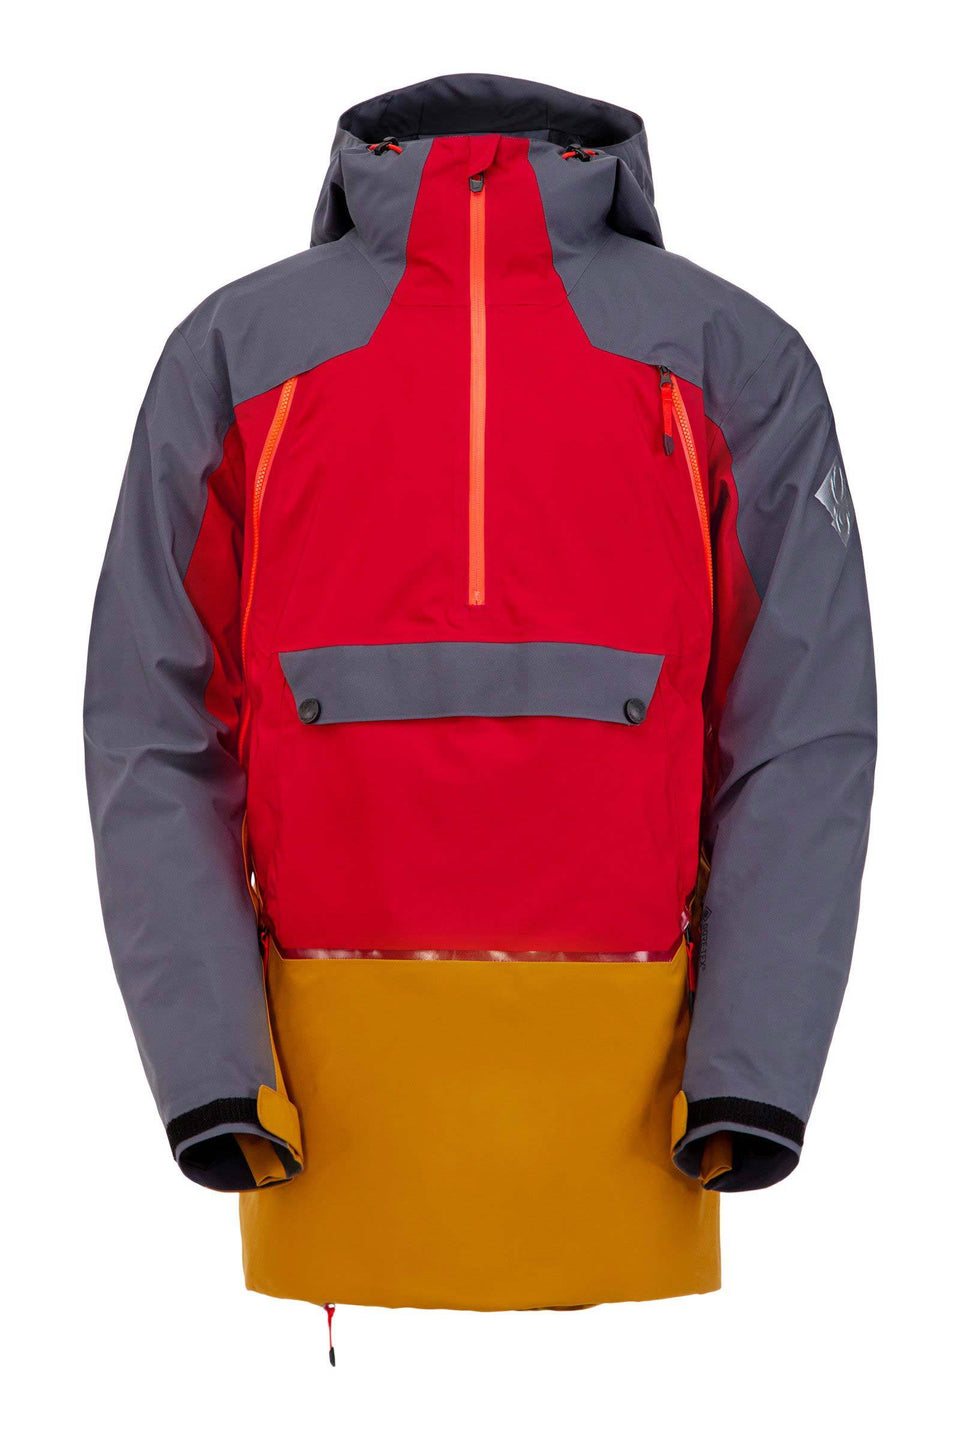 M//THE TENMILE//GTX ANORAK